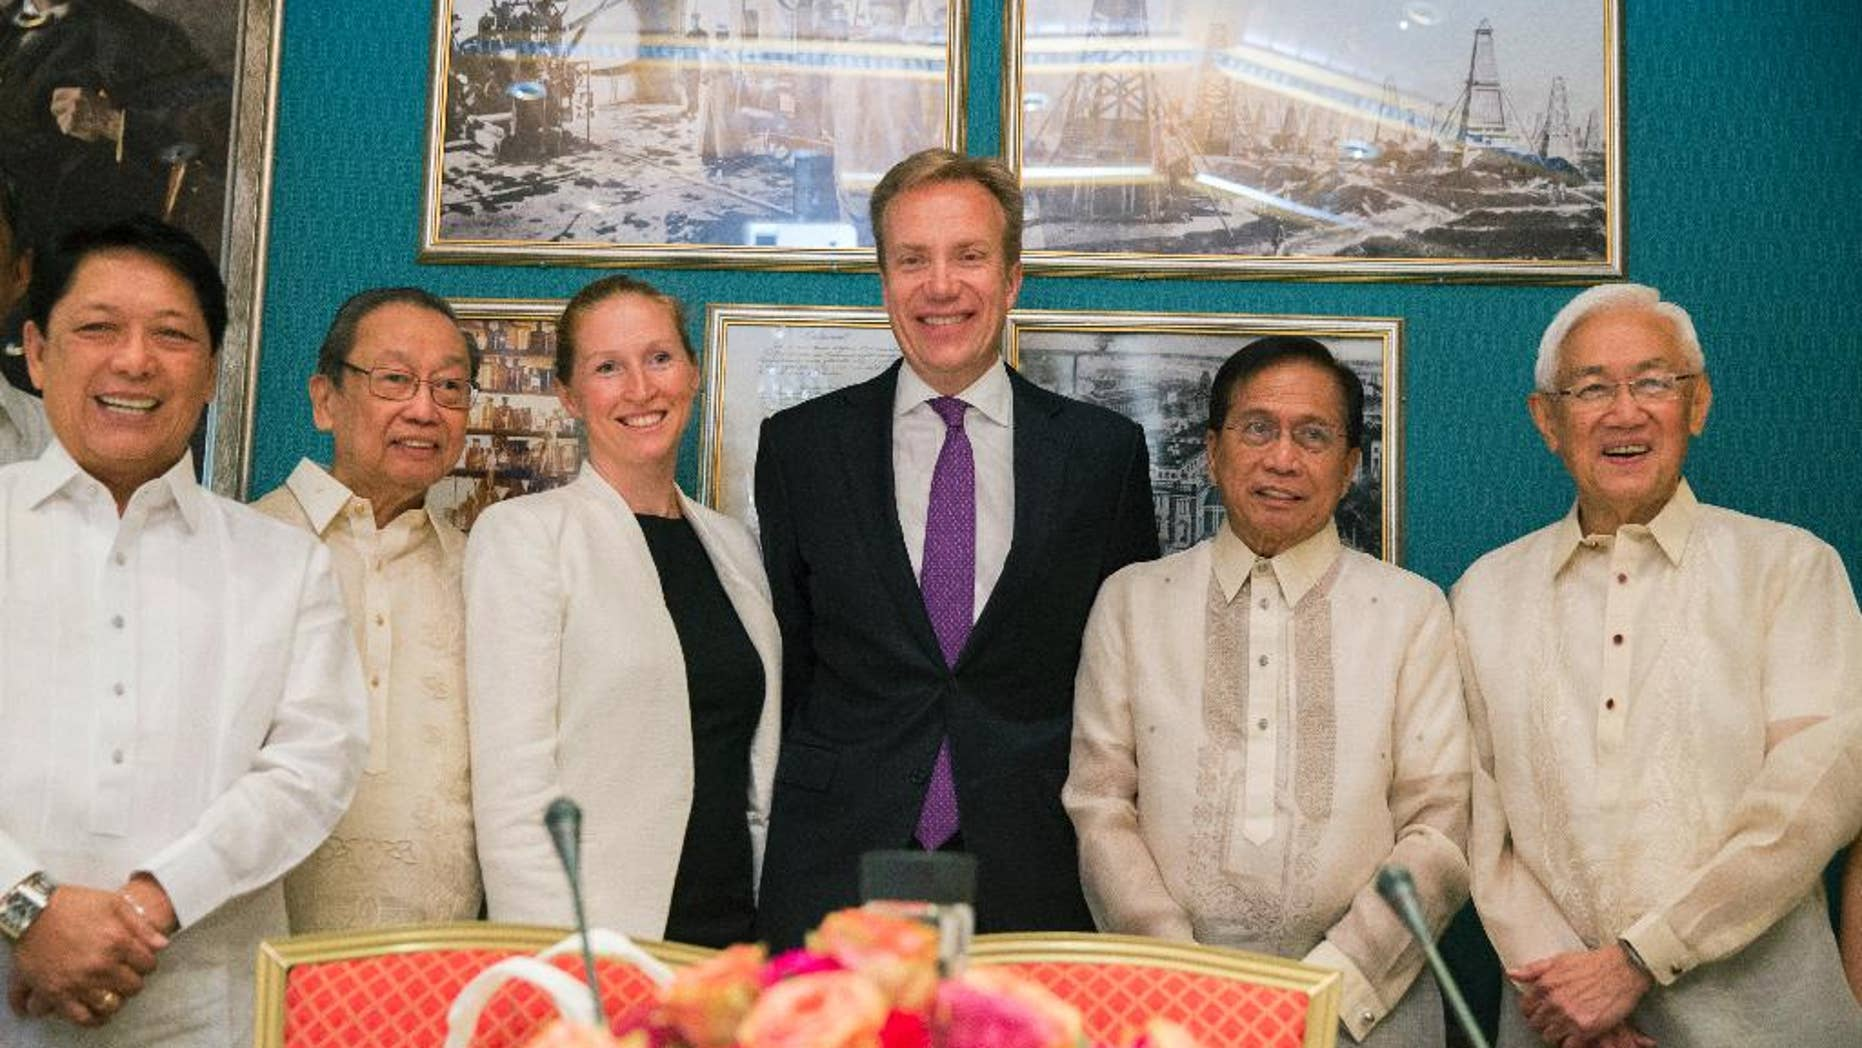 Norwegian Foreign Minister Boerge Brende, third right, and Elisabeth Slaattum, third left, from Norwegian Foreign Minister's office, pose with Philippine Presidential Advisor on the Peace Process Silvestre Bello III, left, National Democratic Front of the Philippines (NDFP) chief political consultant and Communist Party of the Philippines founder chair Jose Maria Sison, second left, and Philippine Presidential Peace Talks Adviser Jesus Dureza, second right, during their meeting in Oslo, Norway, Monday, Aug. 22, 2016. Norway is hosting a four-day peace talks between the Philippine government and the NDFP that will focus on resolving the root problems of an insurgency that has left more than 150,000 combatants and civilians dead and undermined the Philippines' economic development. (Berit Roald/NTB scanpix via AP)